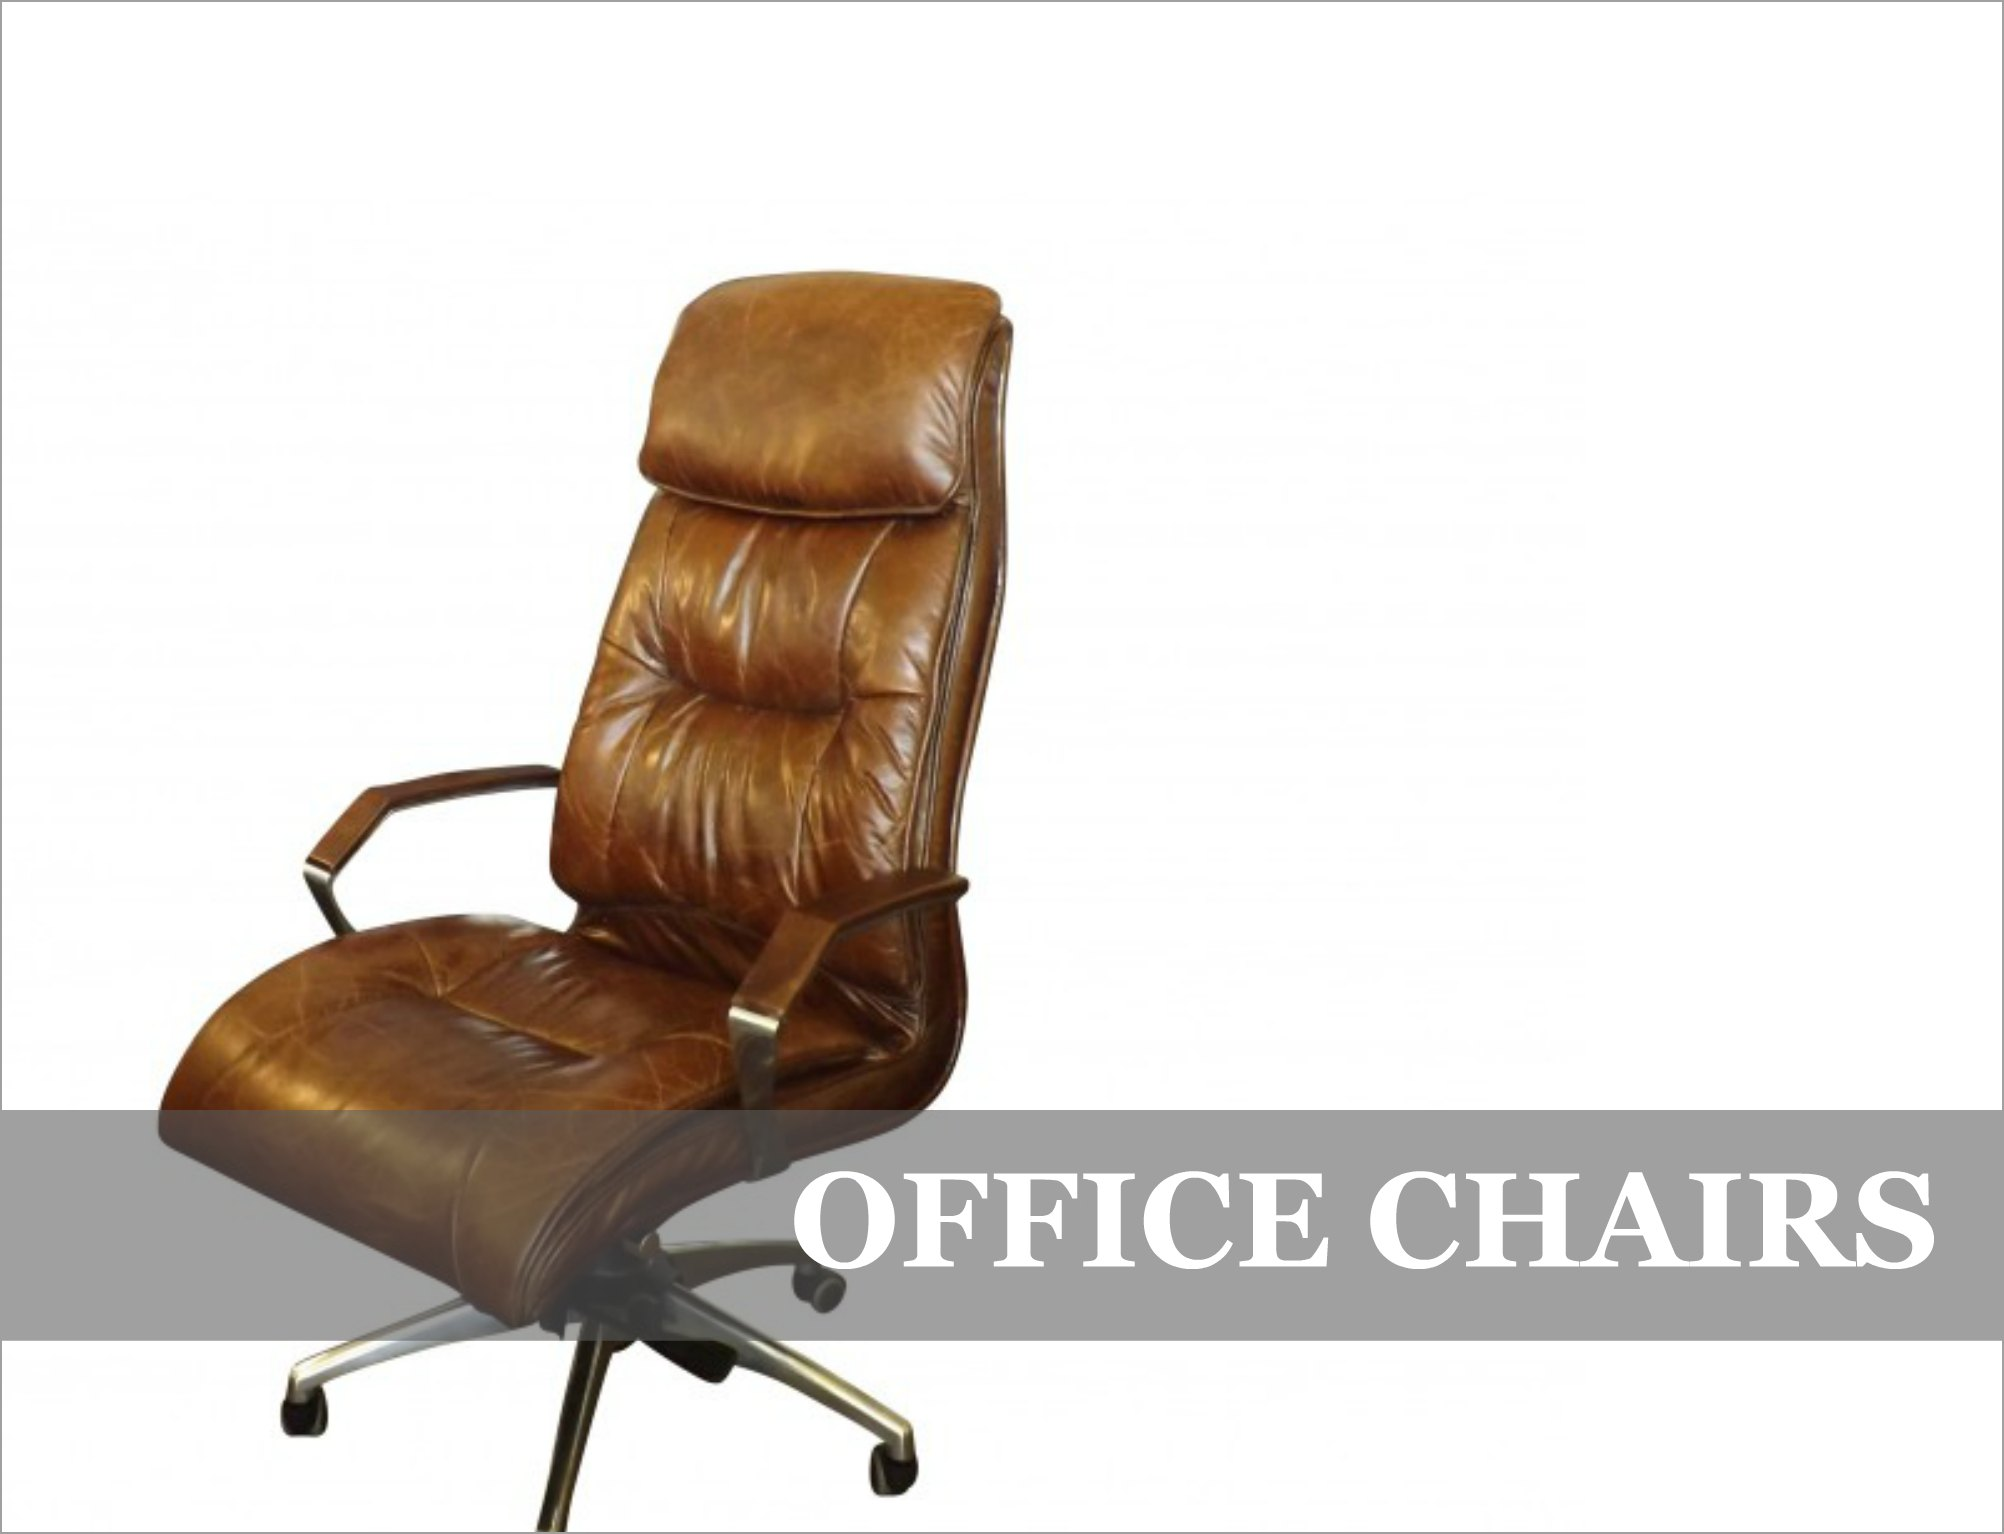 French Provincial Office Chairs